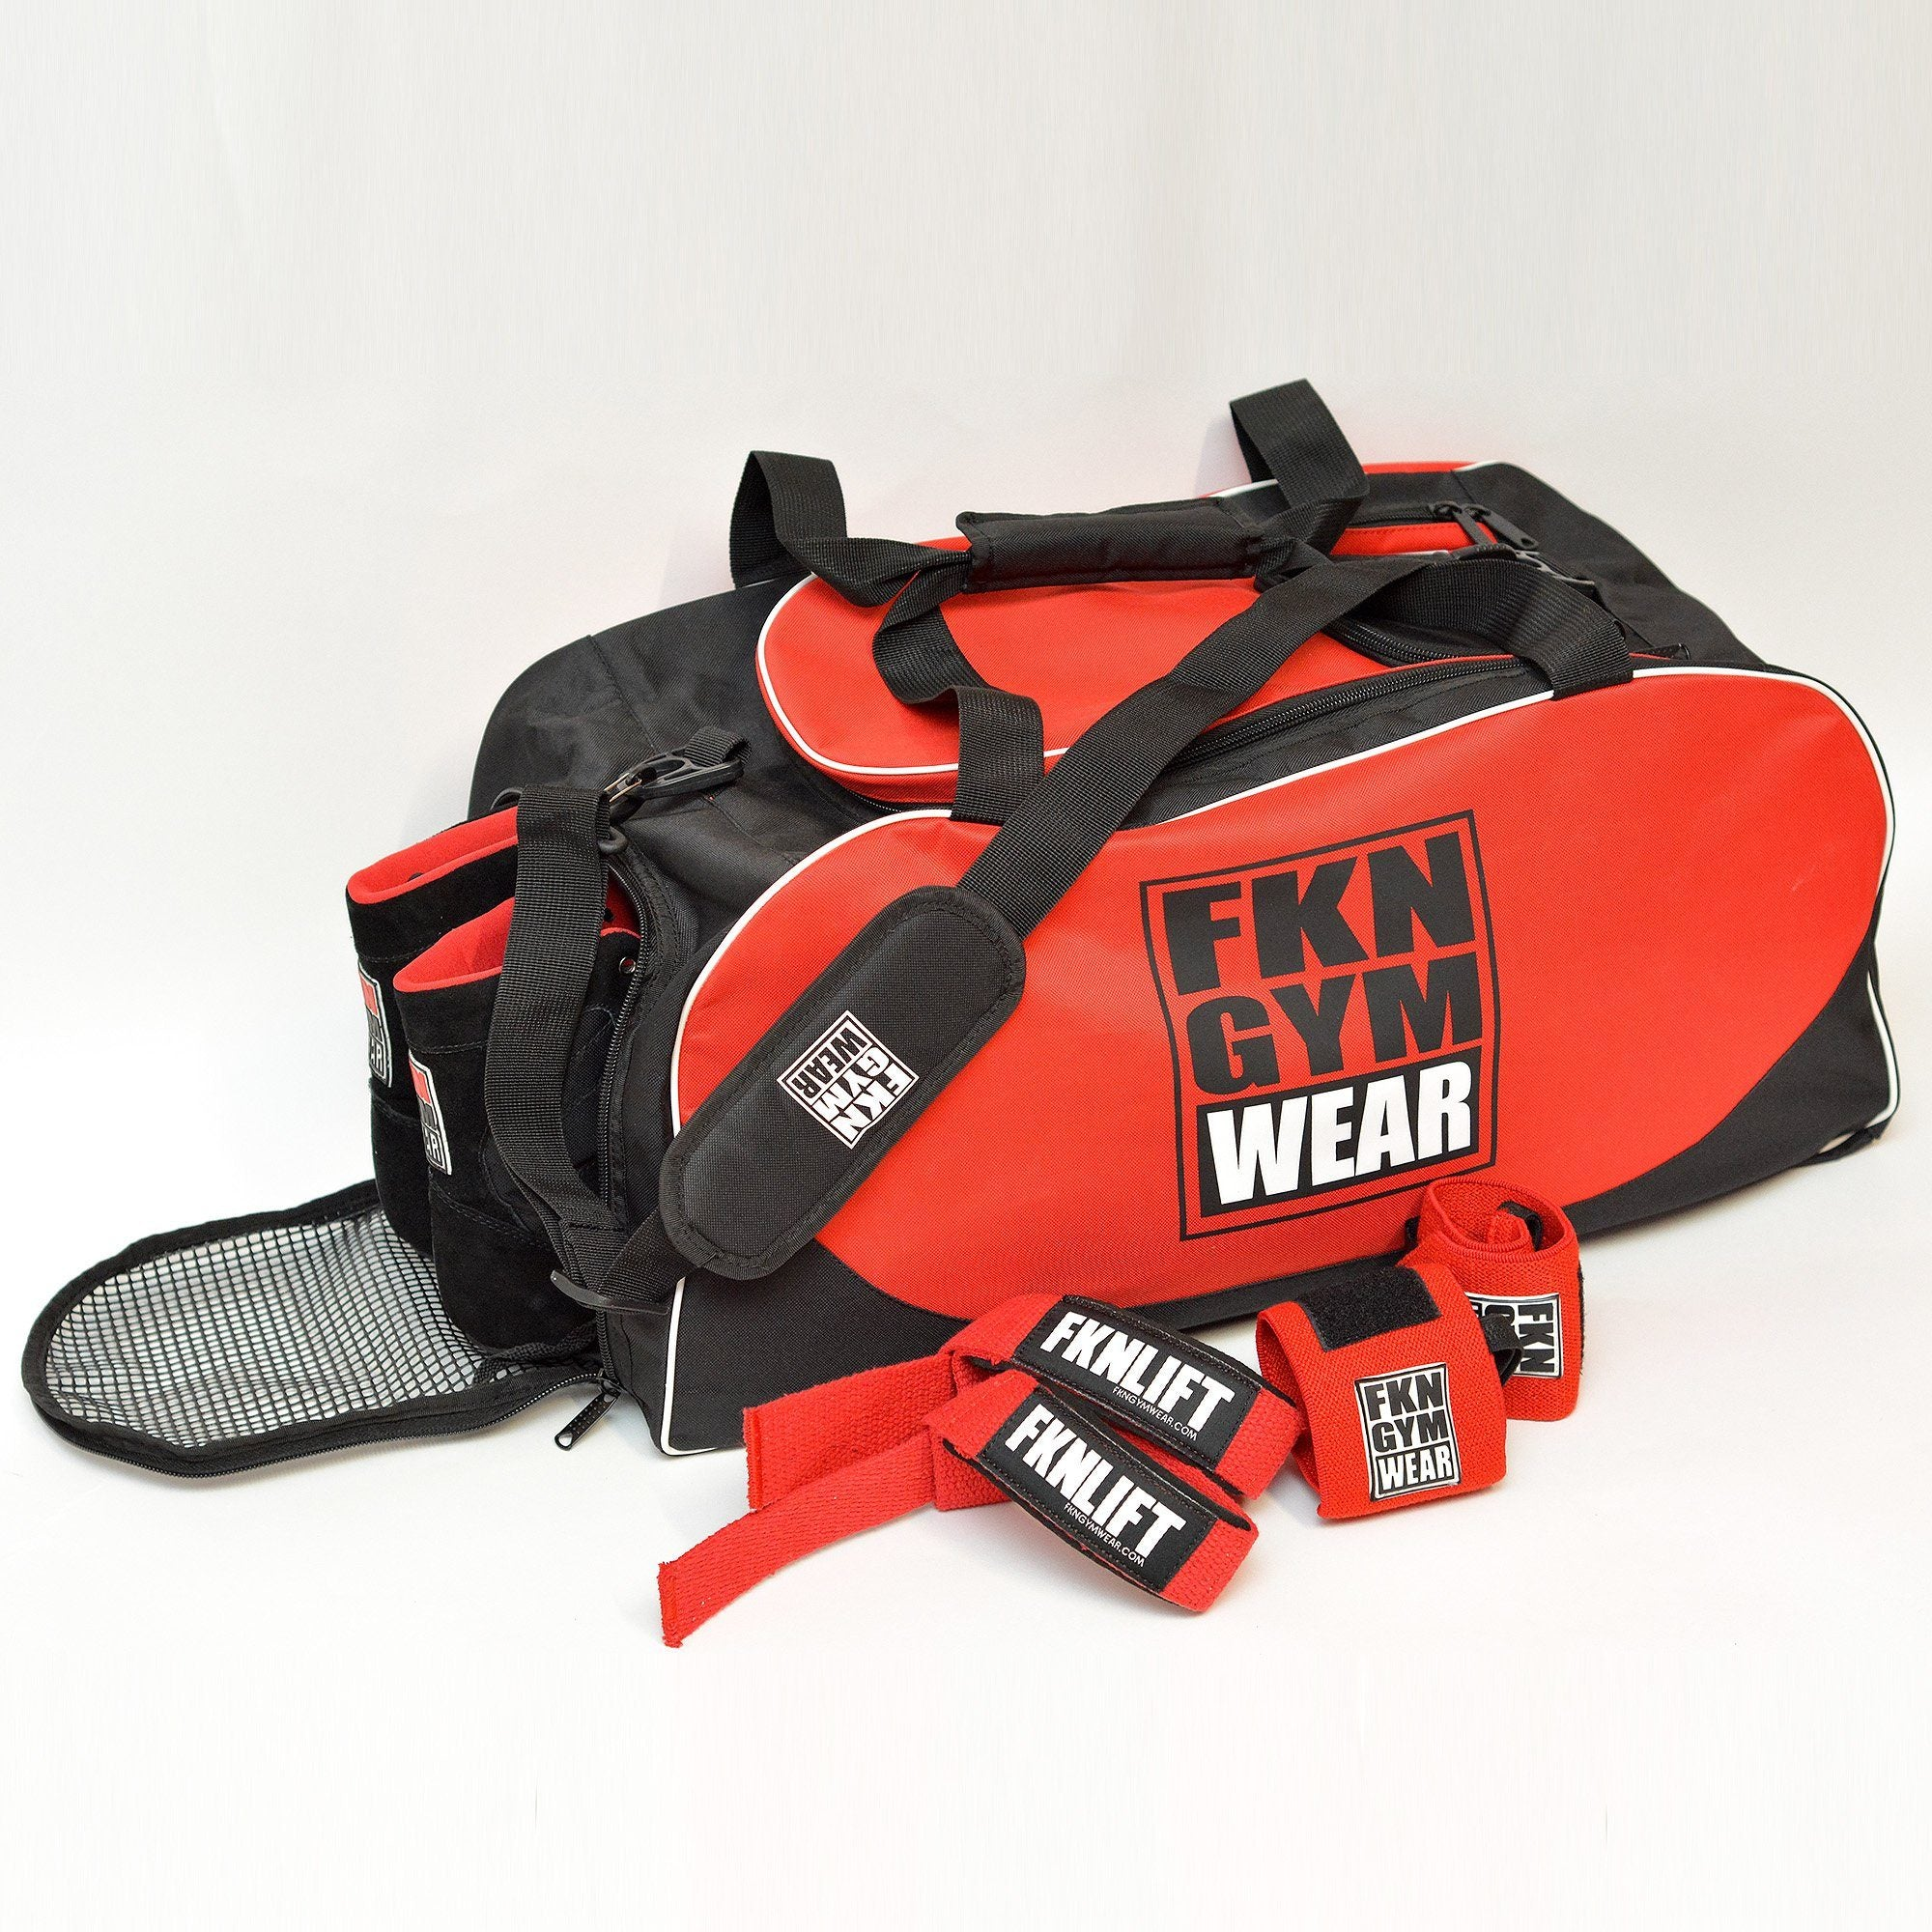 FKN Gym Wear Bag, Straps & Wraps Kit - Red